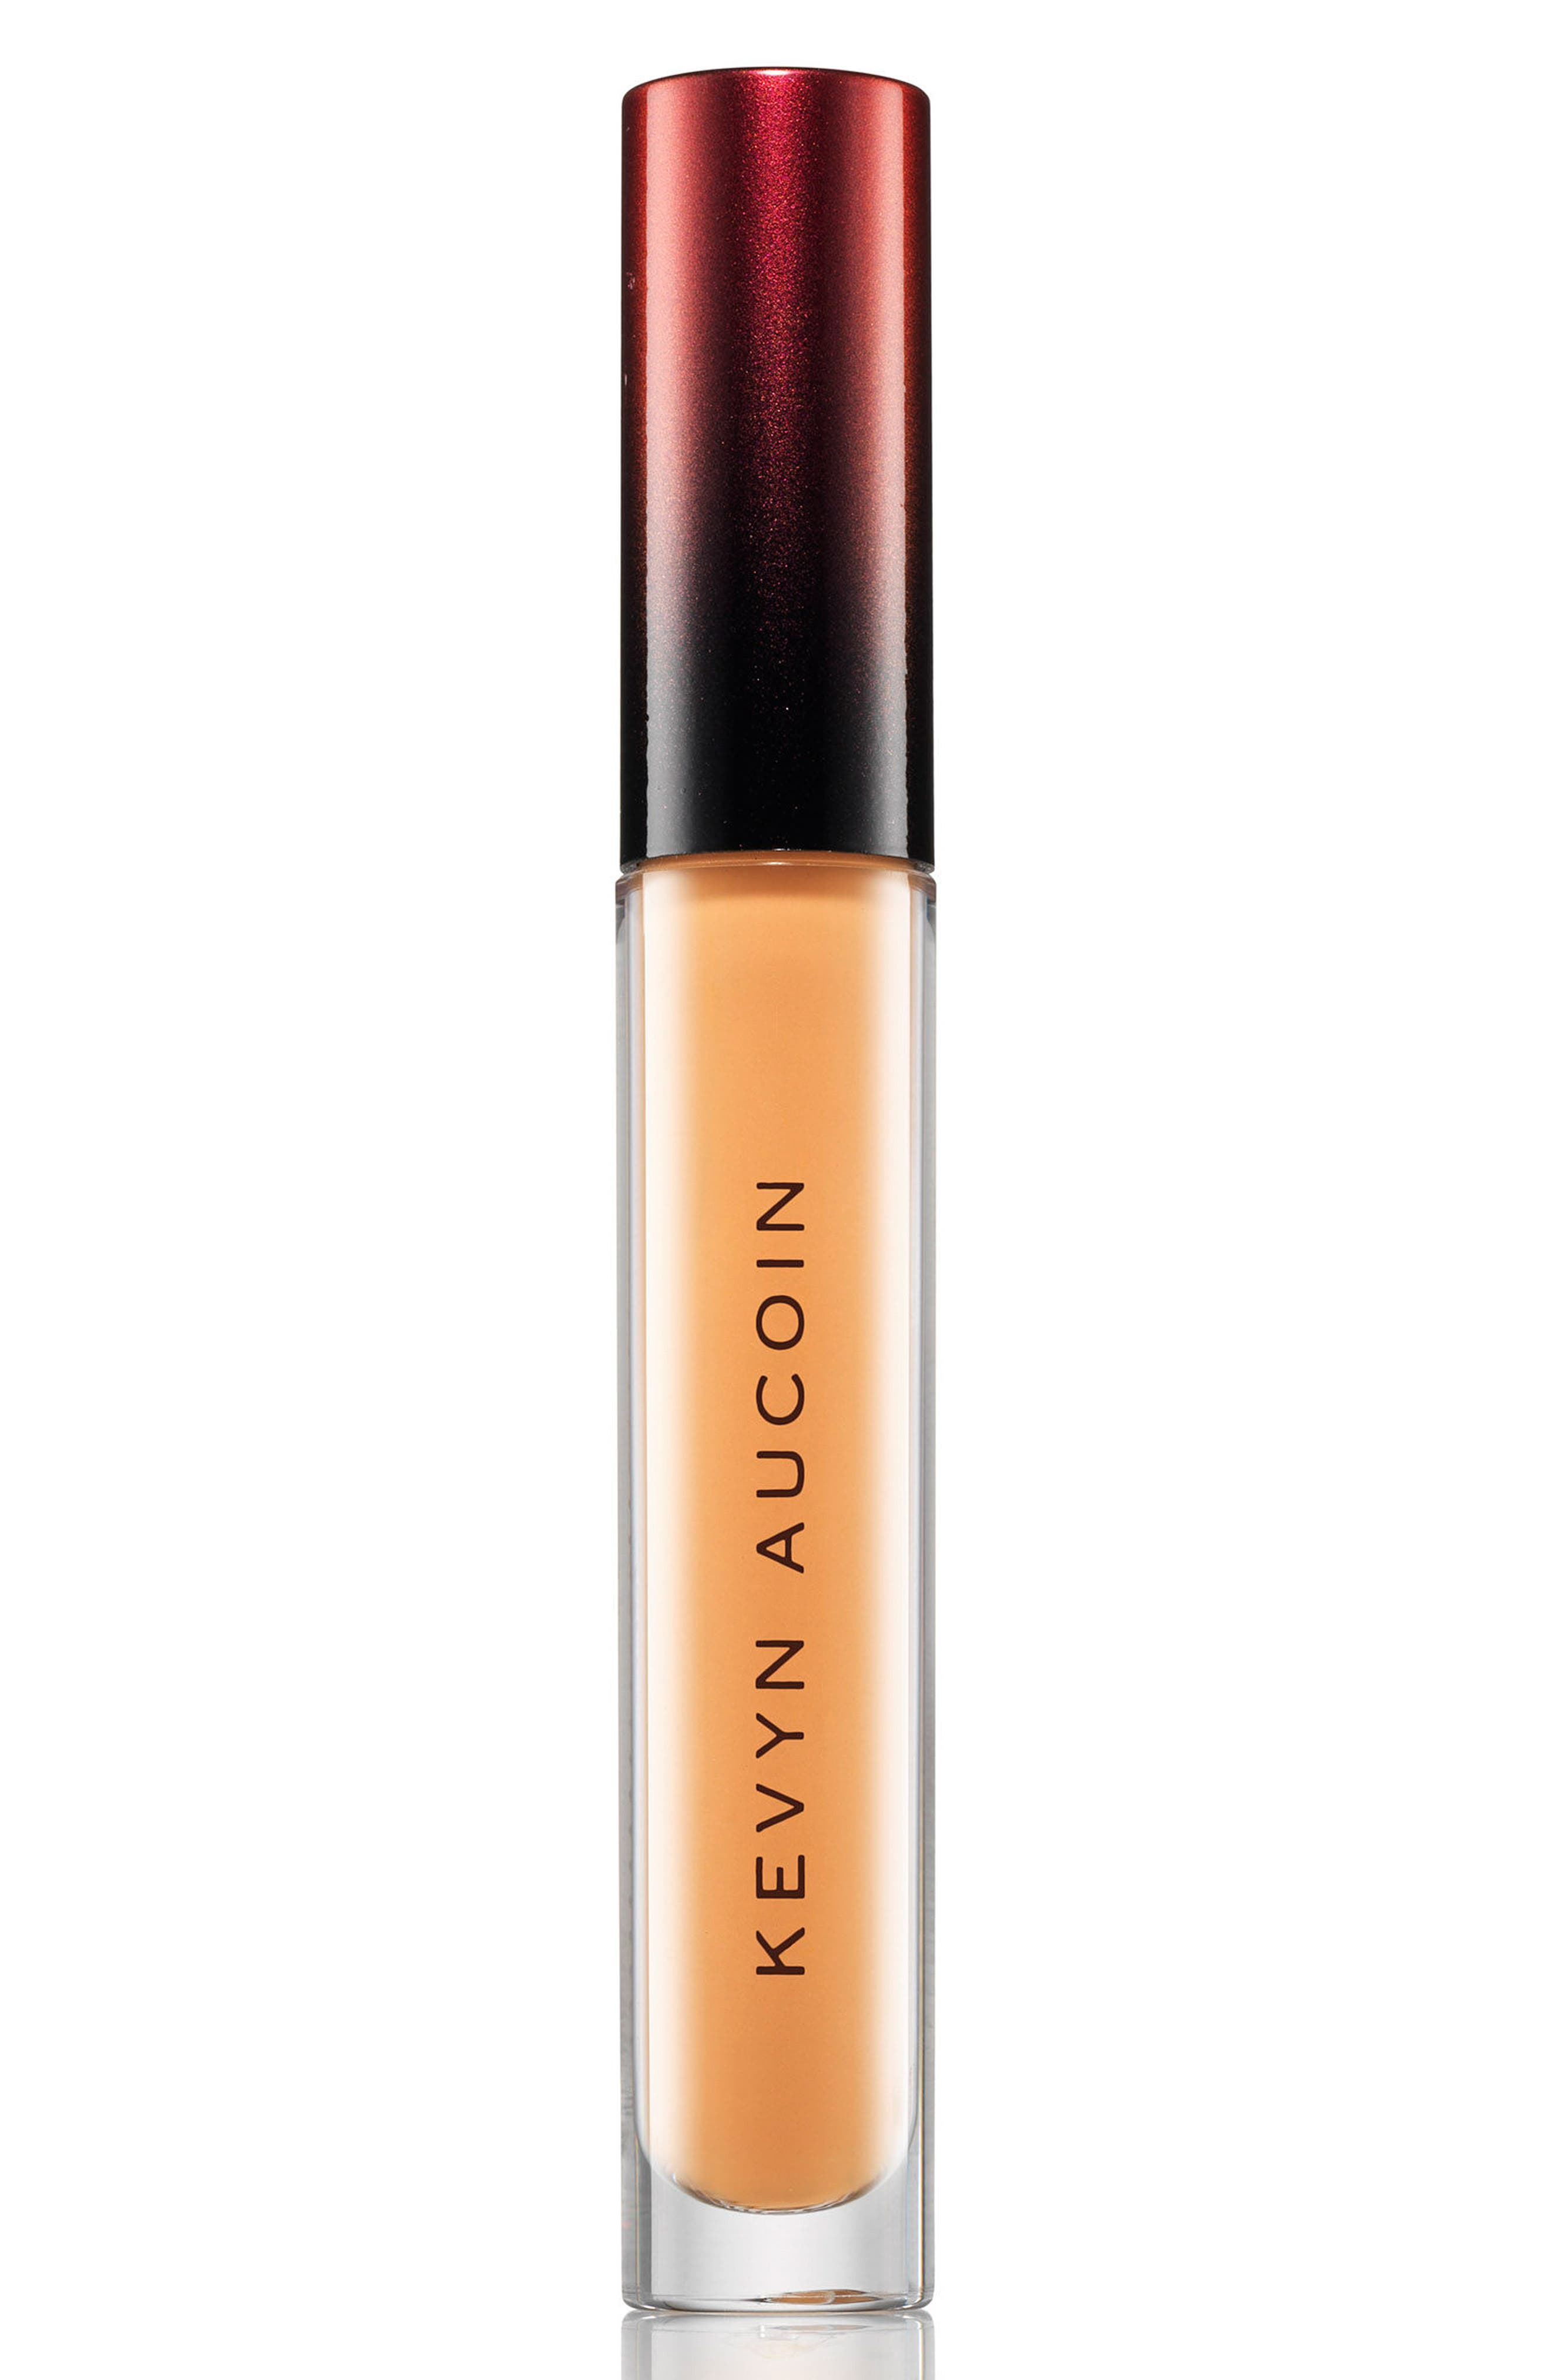 Main Image - SPACE.NK.apothecary Kevyn Aucoin Beauty The Etherealist Super Natural Concealer